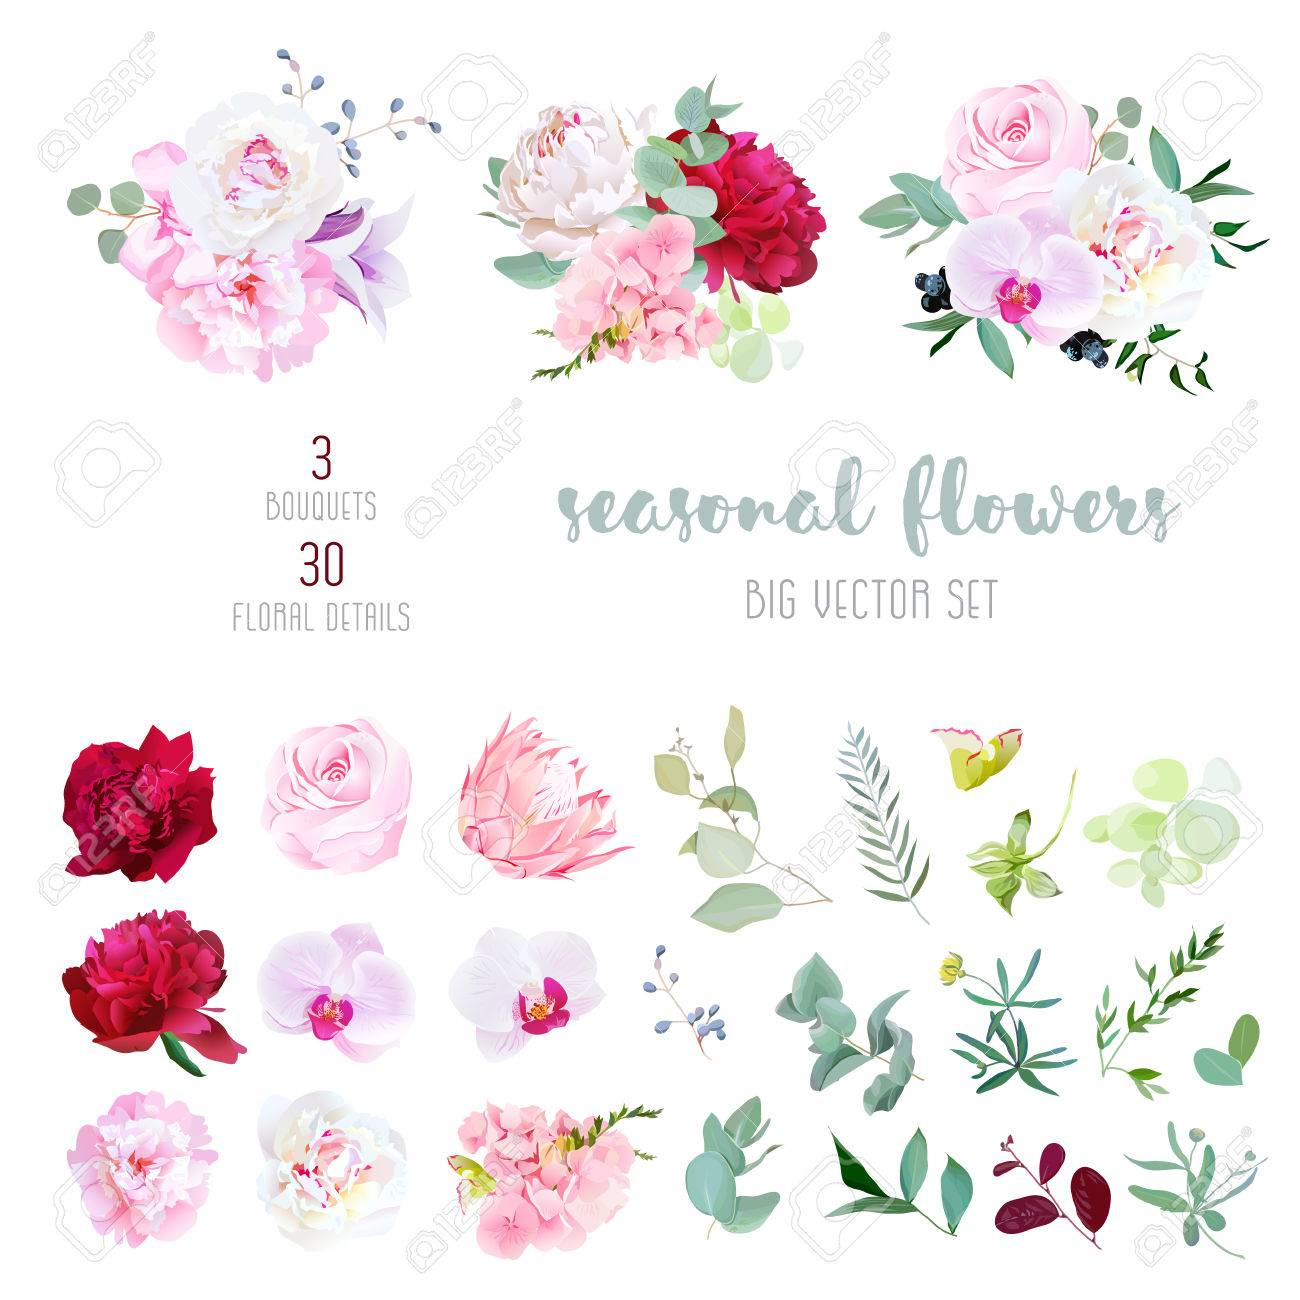 Pink rose, white and burgundy red peony, protea, violet orchid, hydrangea, campanula flowers and mix of seasonal plants and herbs big vector collection. All elements are isolated and editable. - 69595444